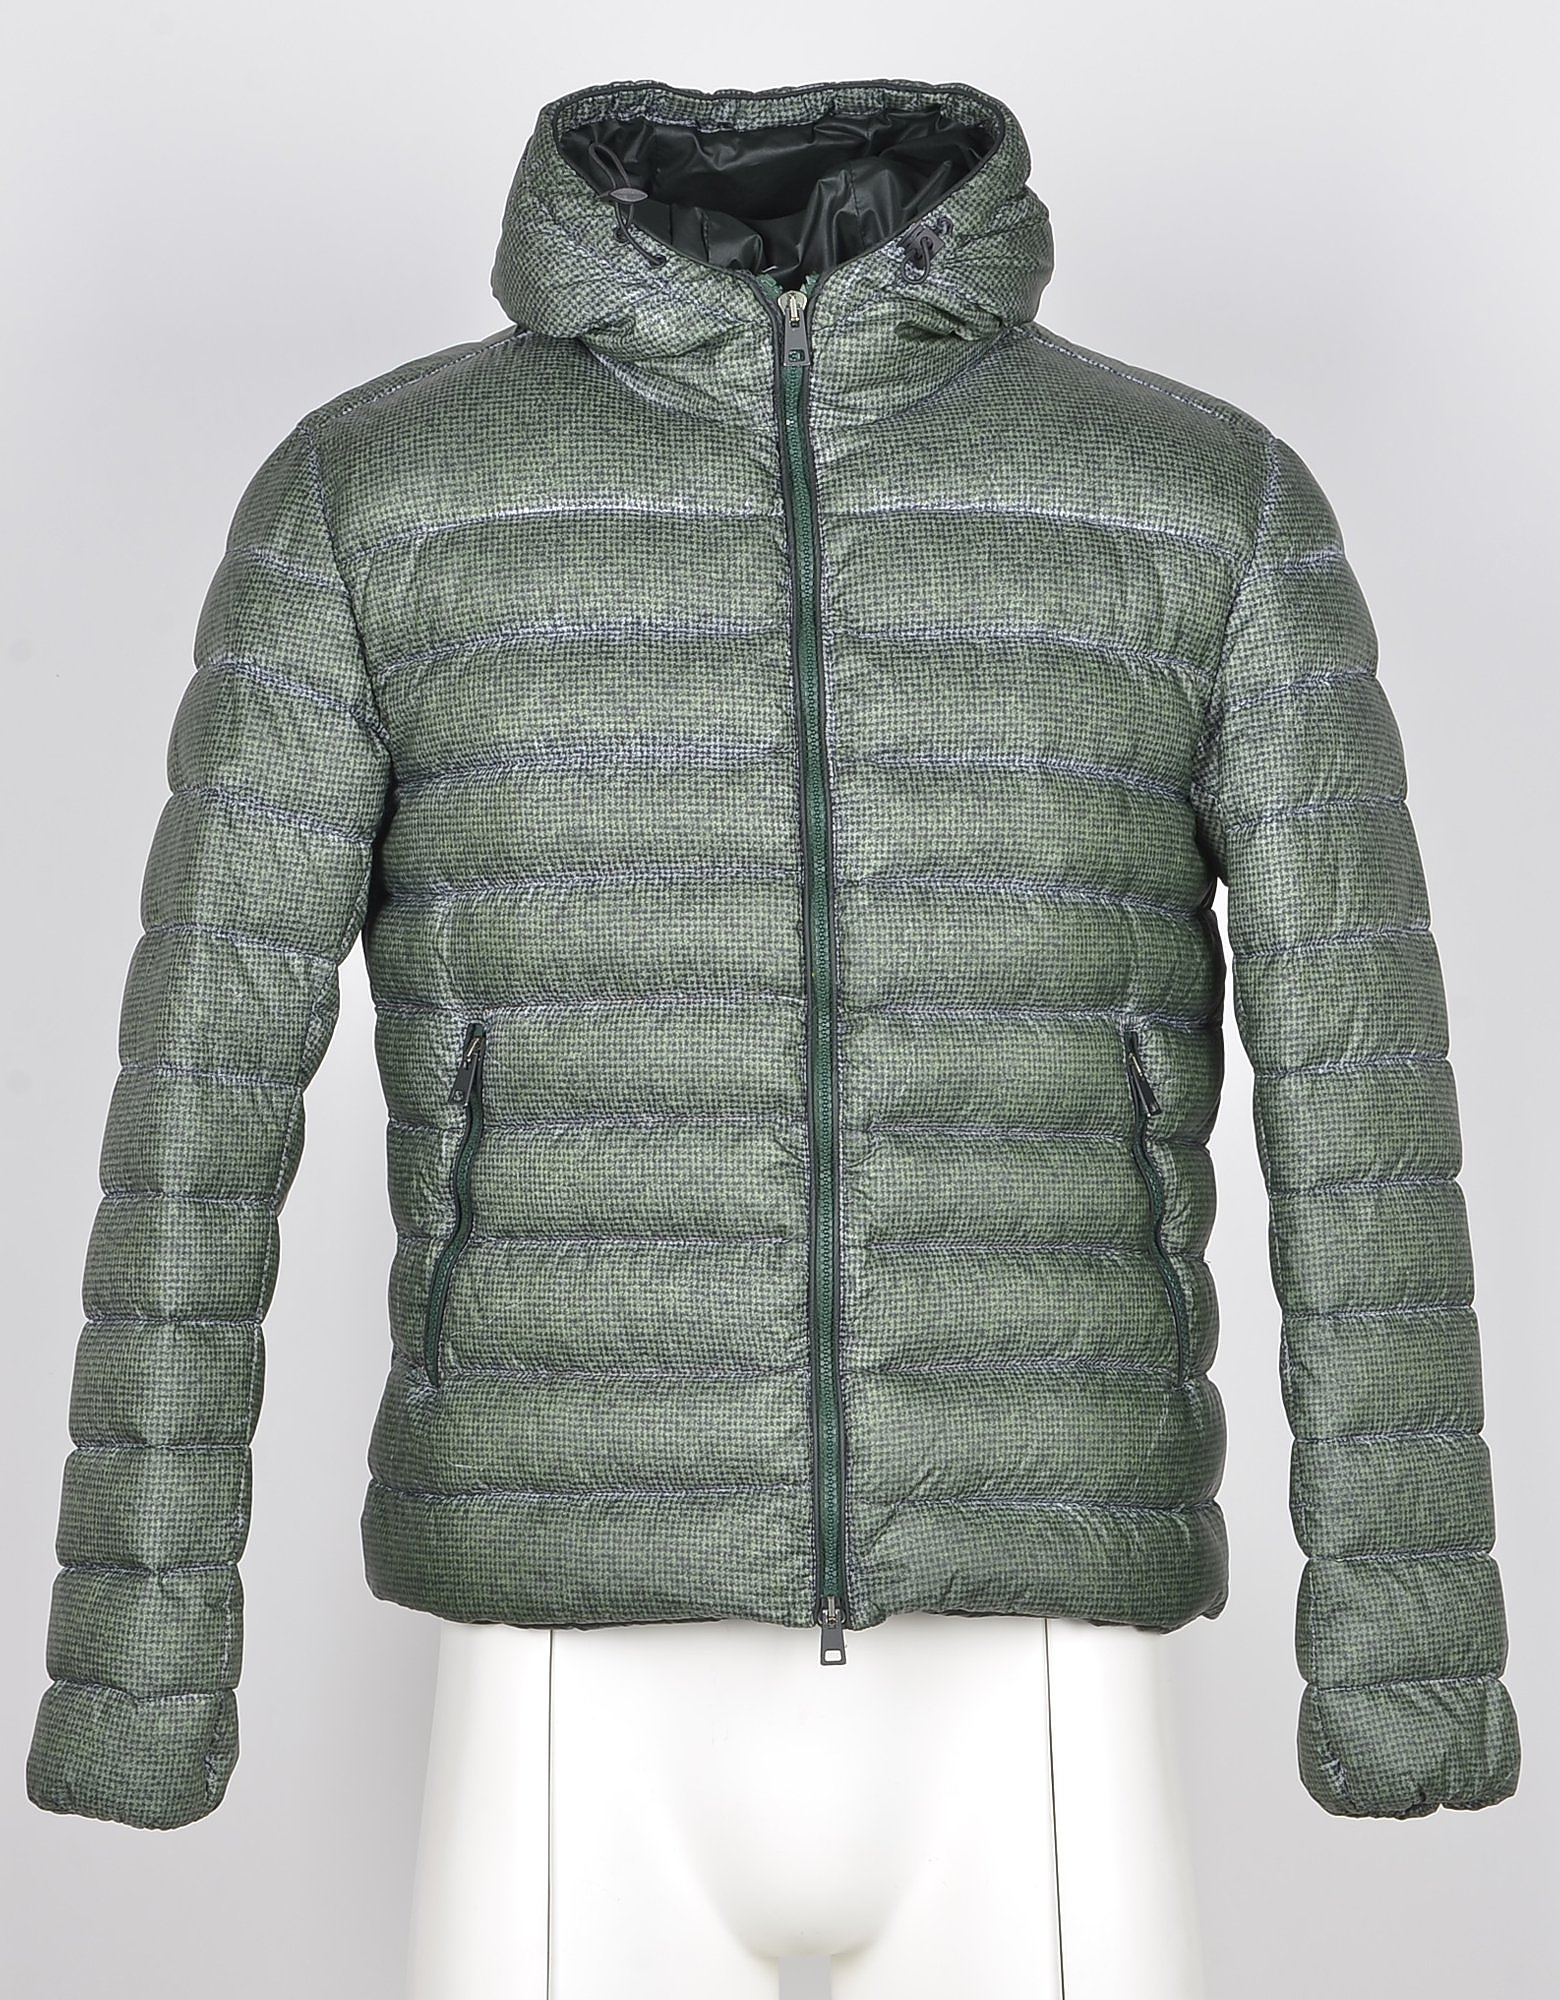 Fradi Designer Coats & Jackets, Men's Green Padded Jacket